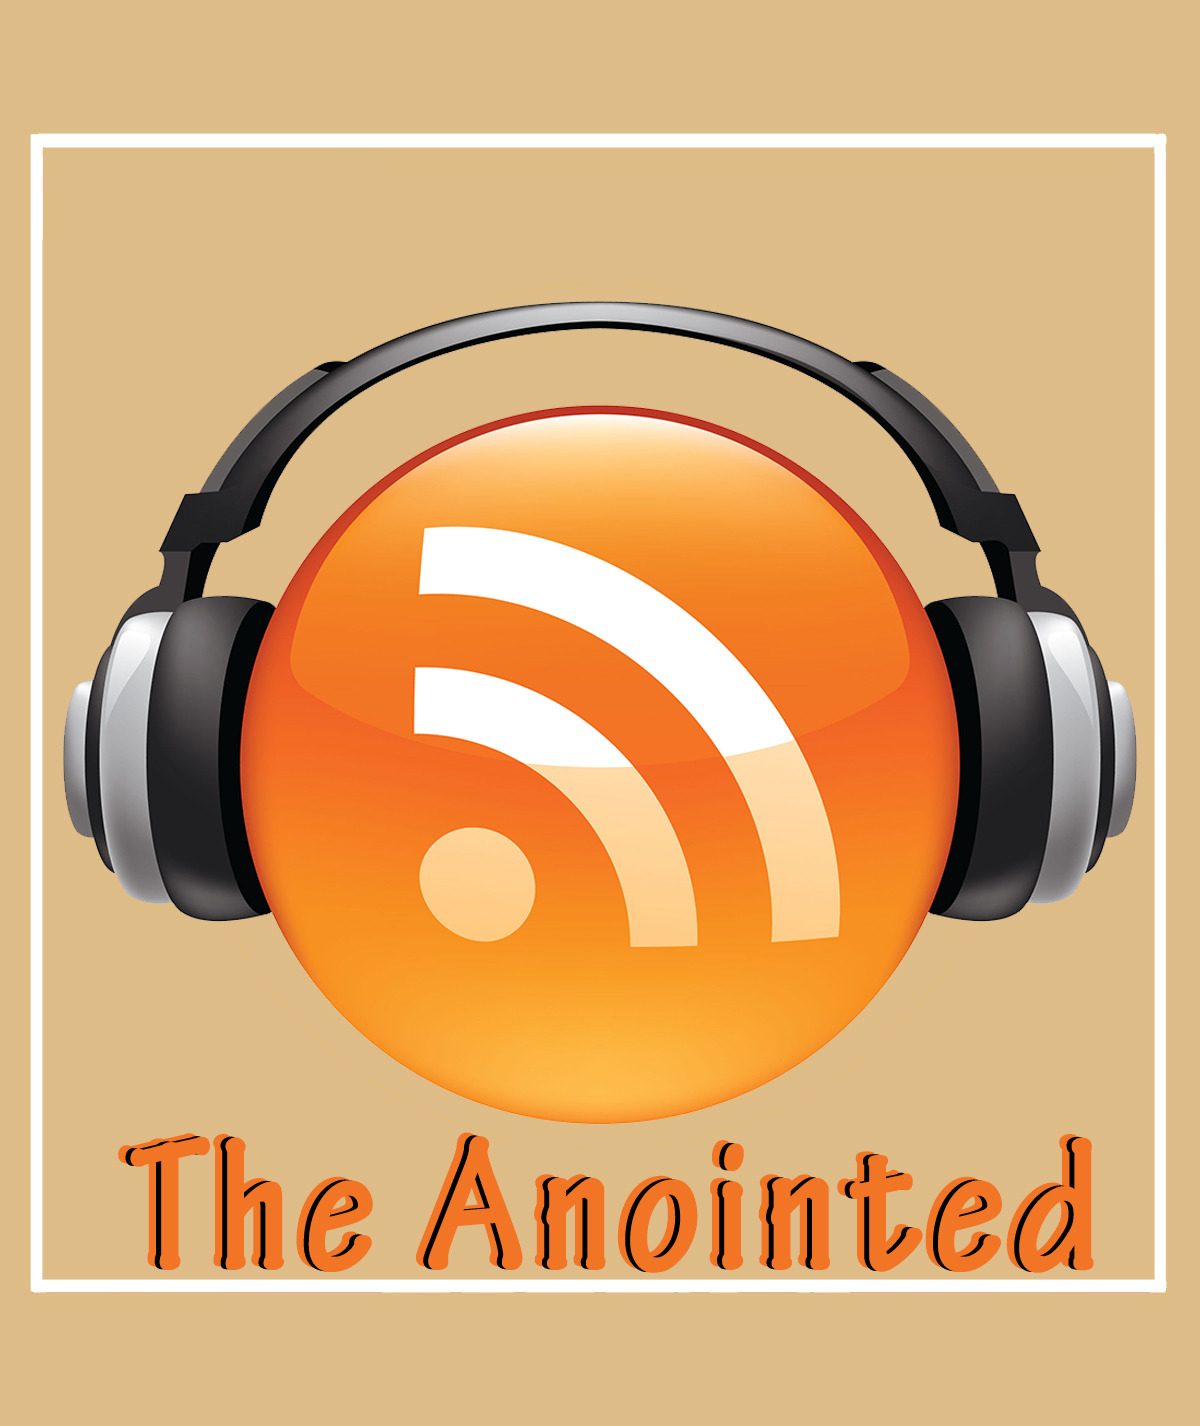 The Anointed Podcast - James Martinez